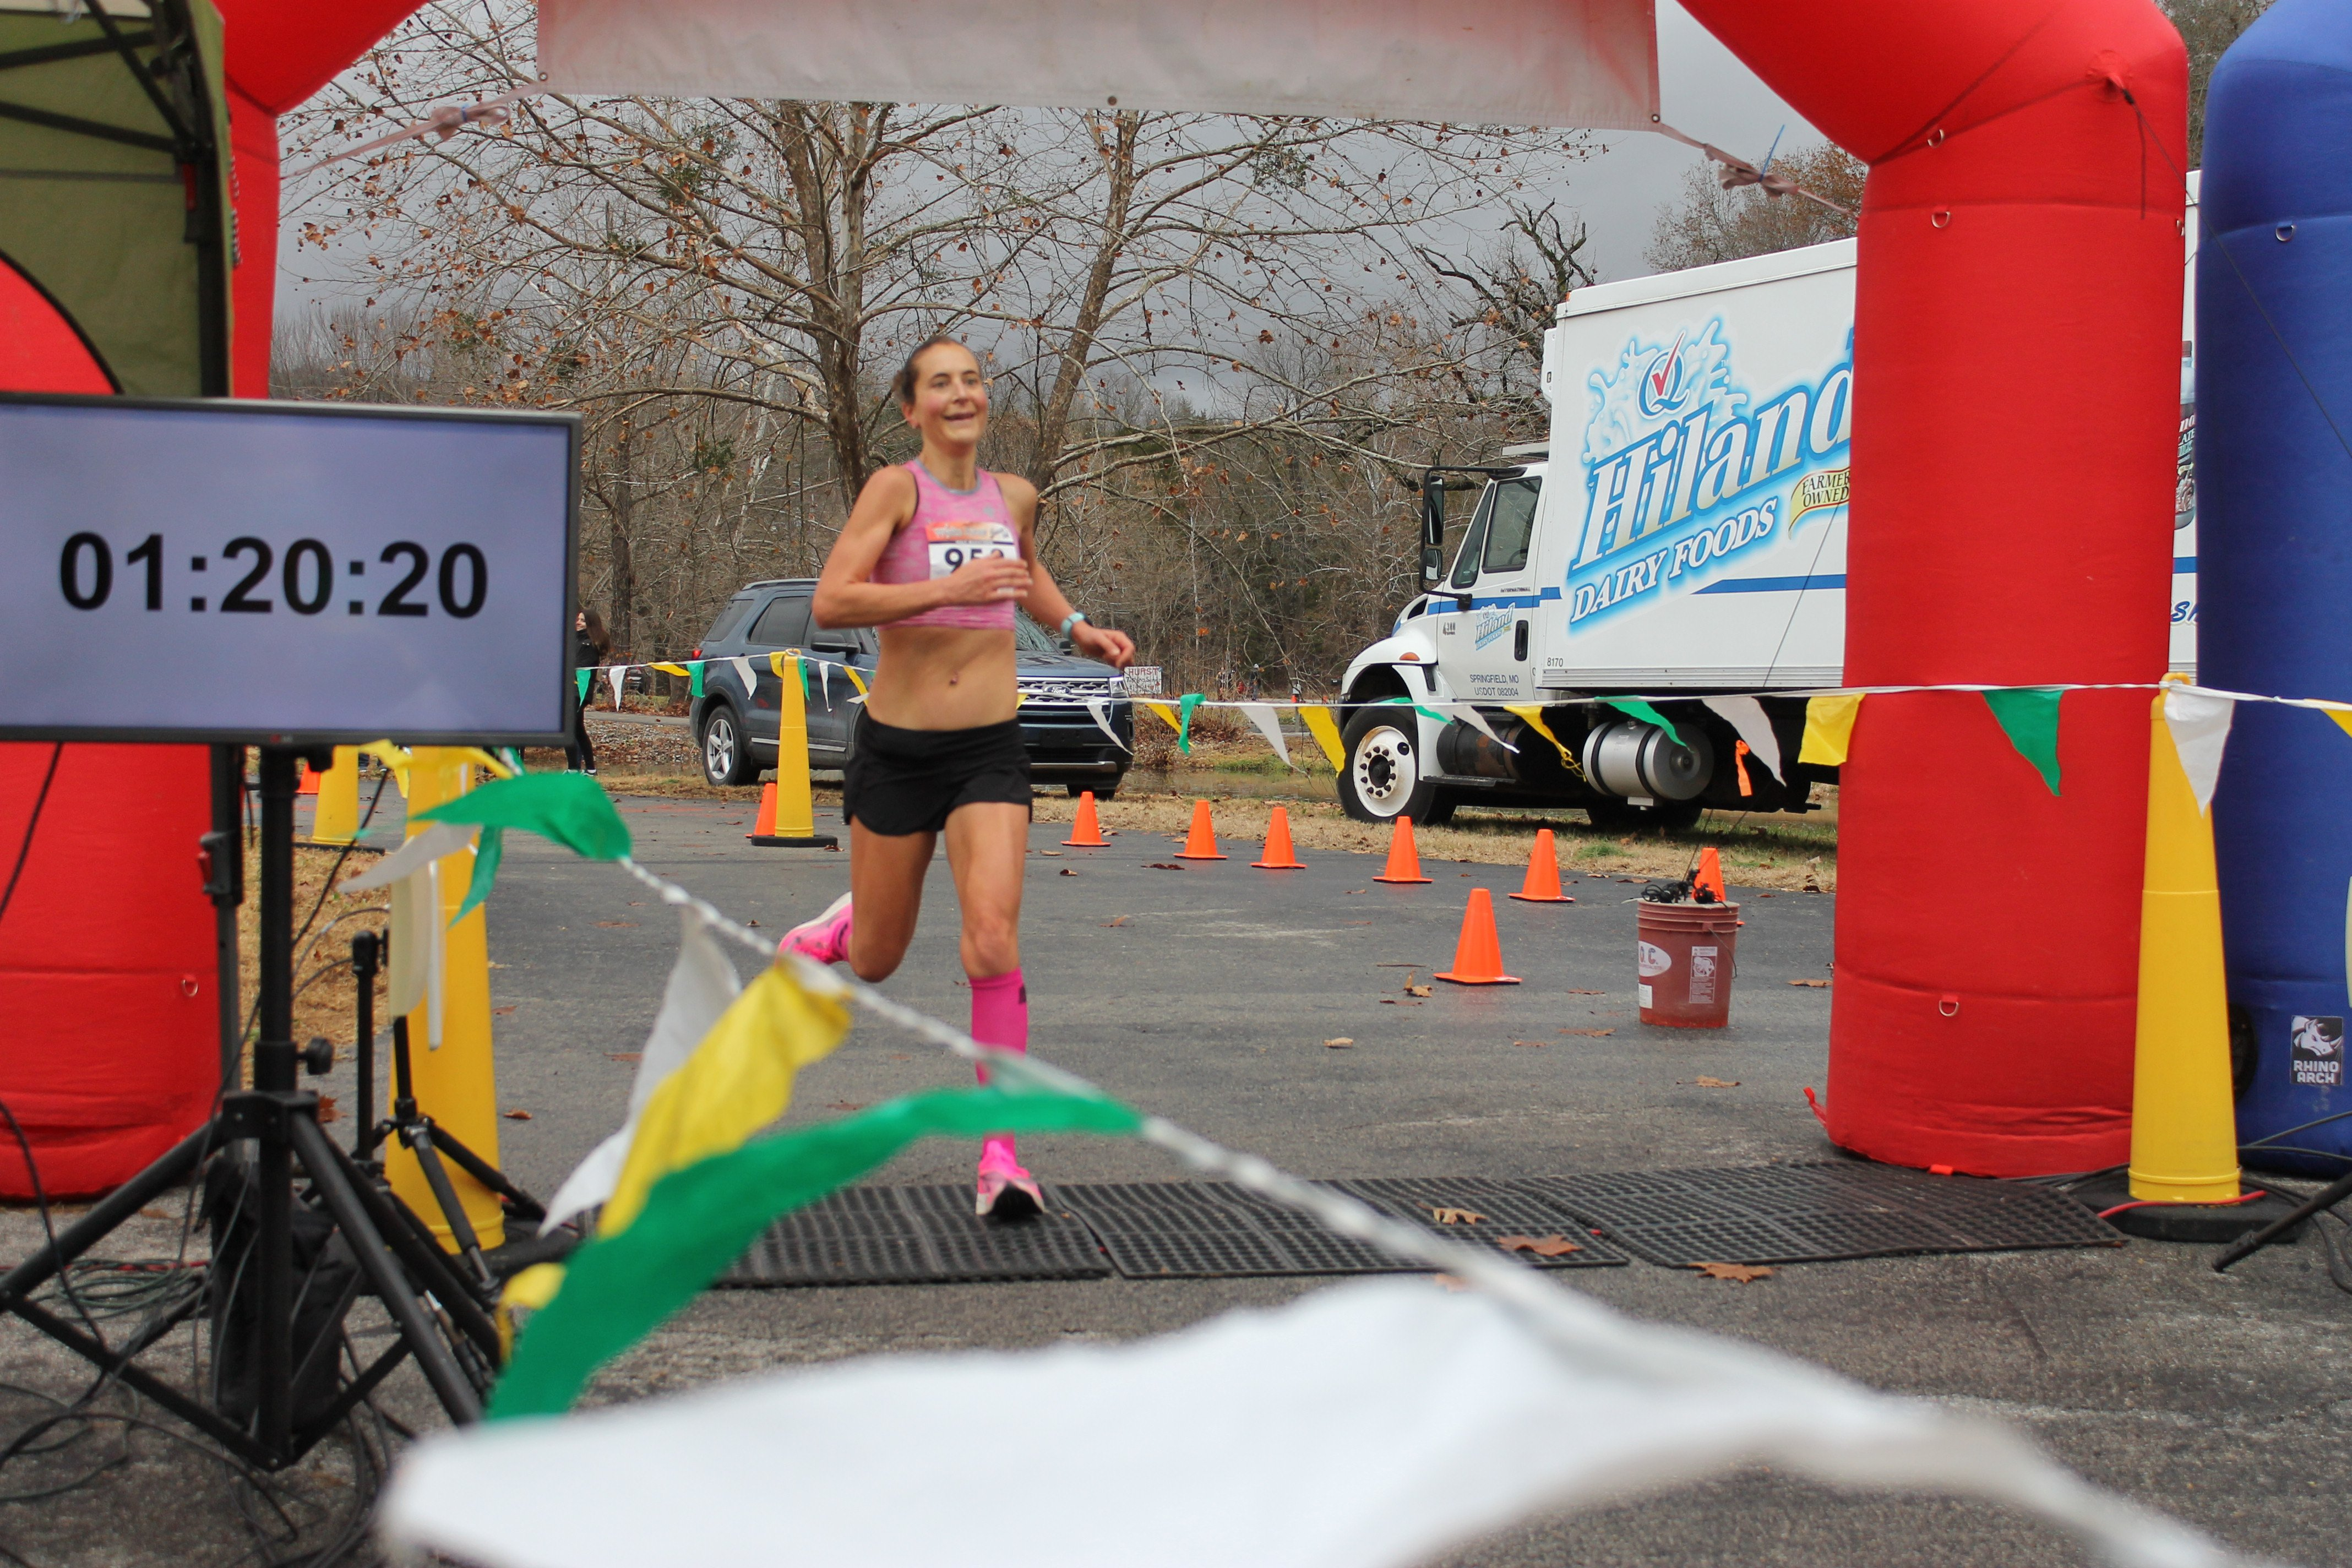 White River Half Marathon: Sometimes being nuts pays off, the sequel (part 1)